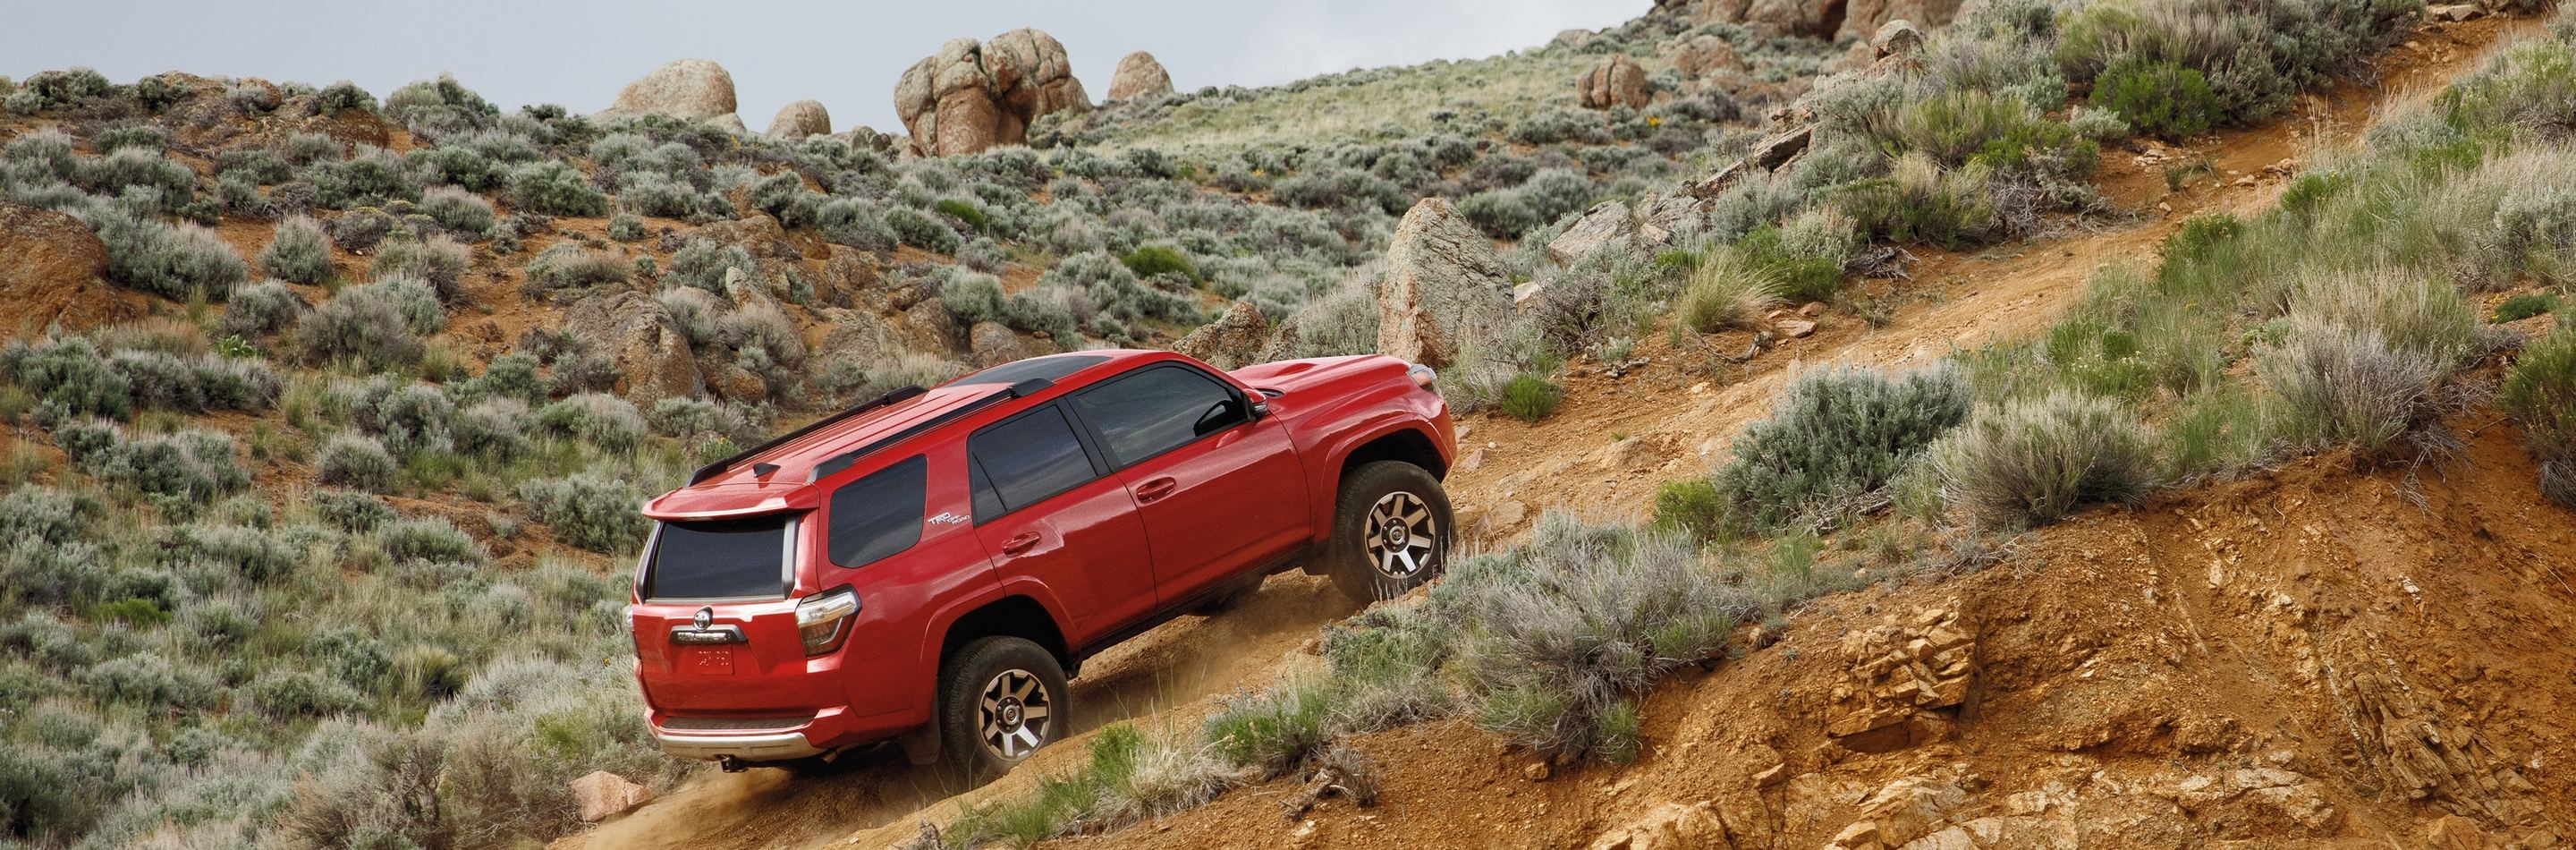 2020 Toyota 4Runner Leasing near San Jose, CA